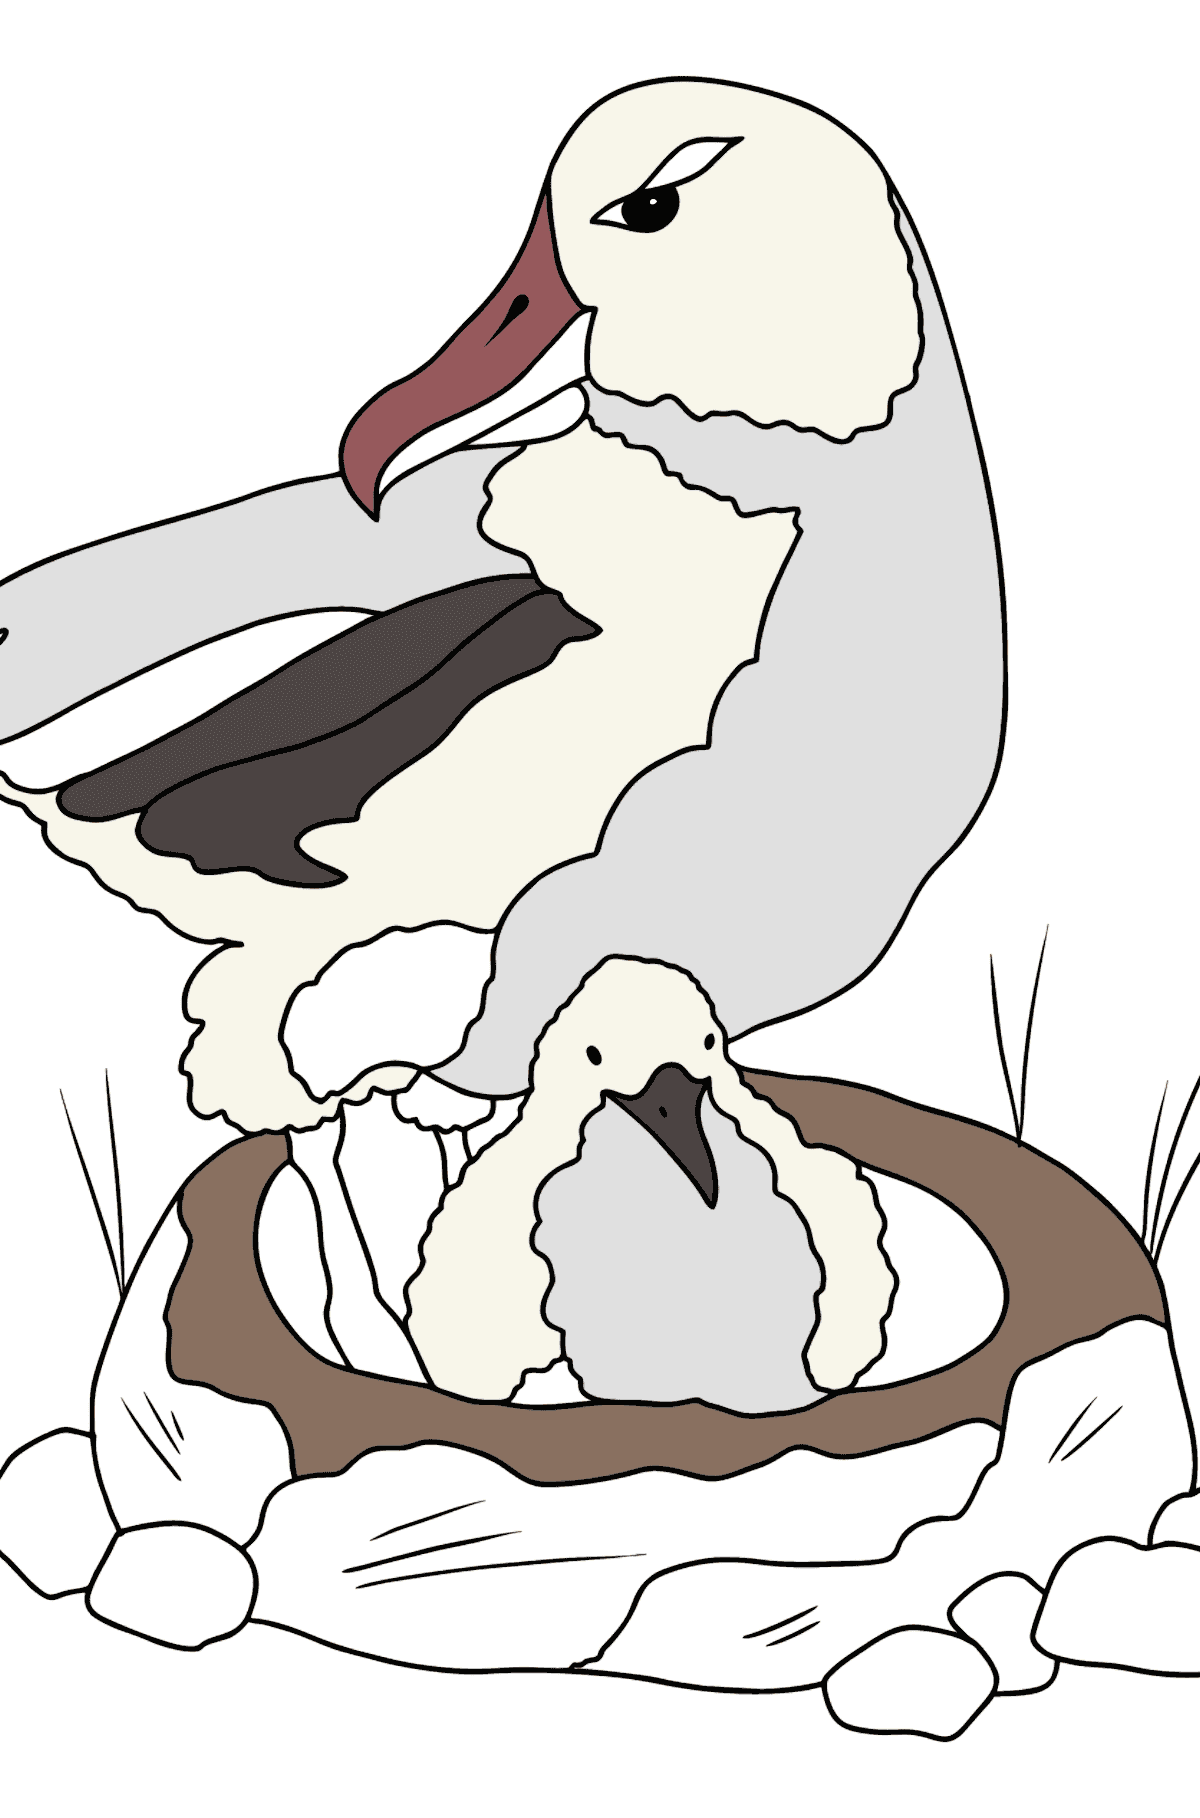 Coloring Page - An Albatross with a Nestling - Coloring Pages for Kids